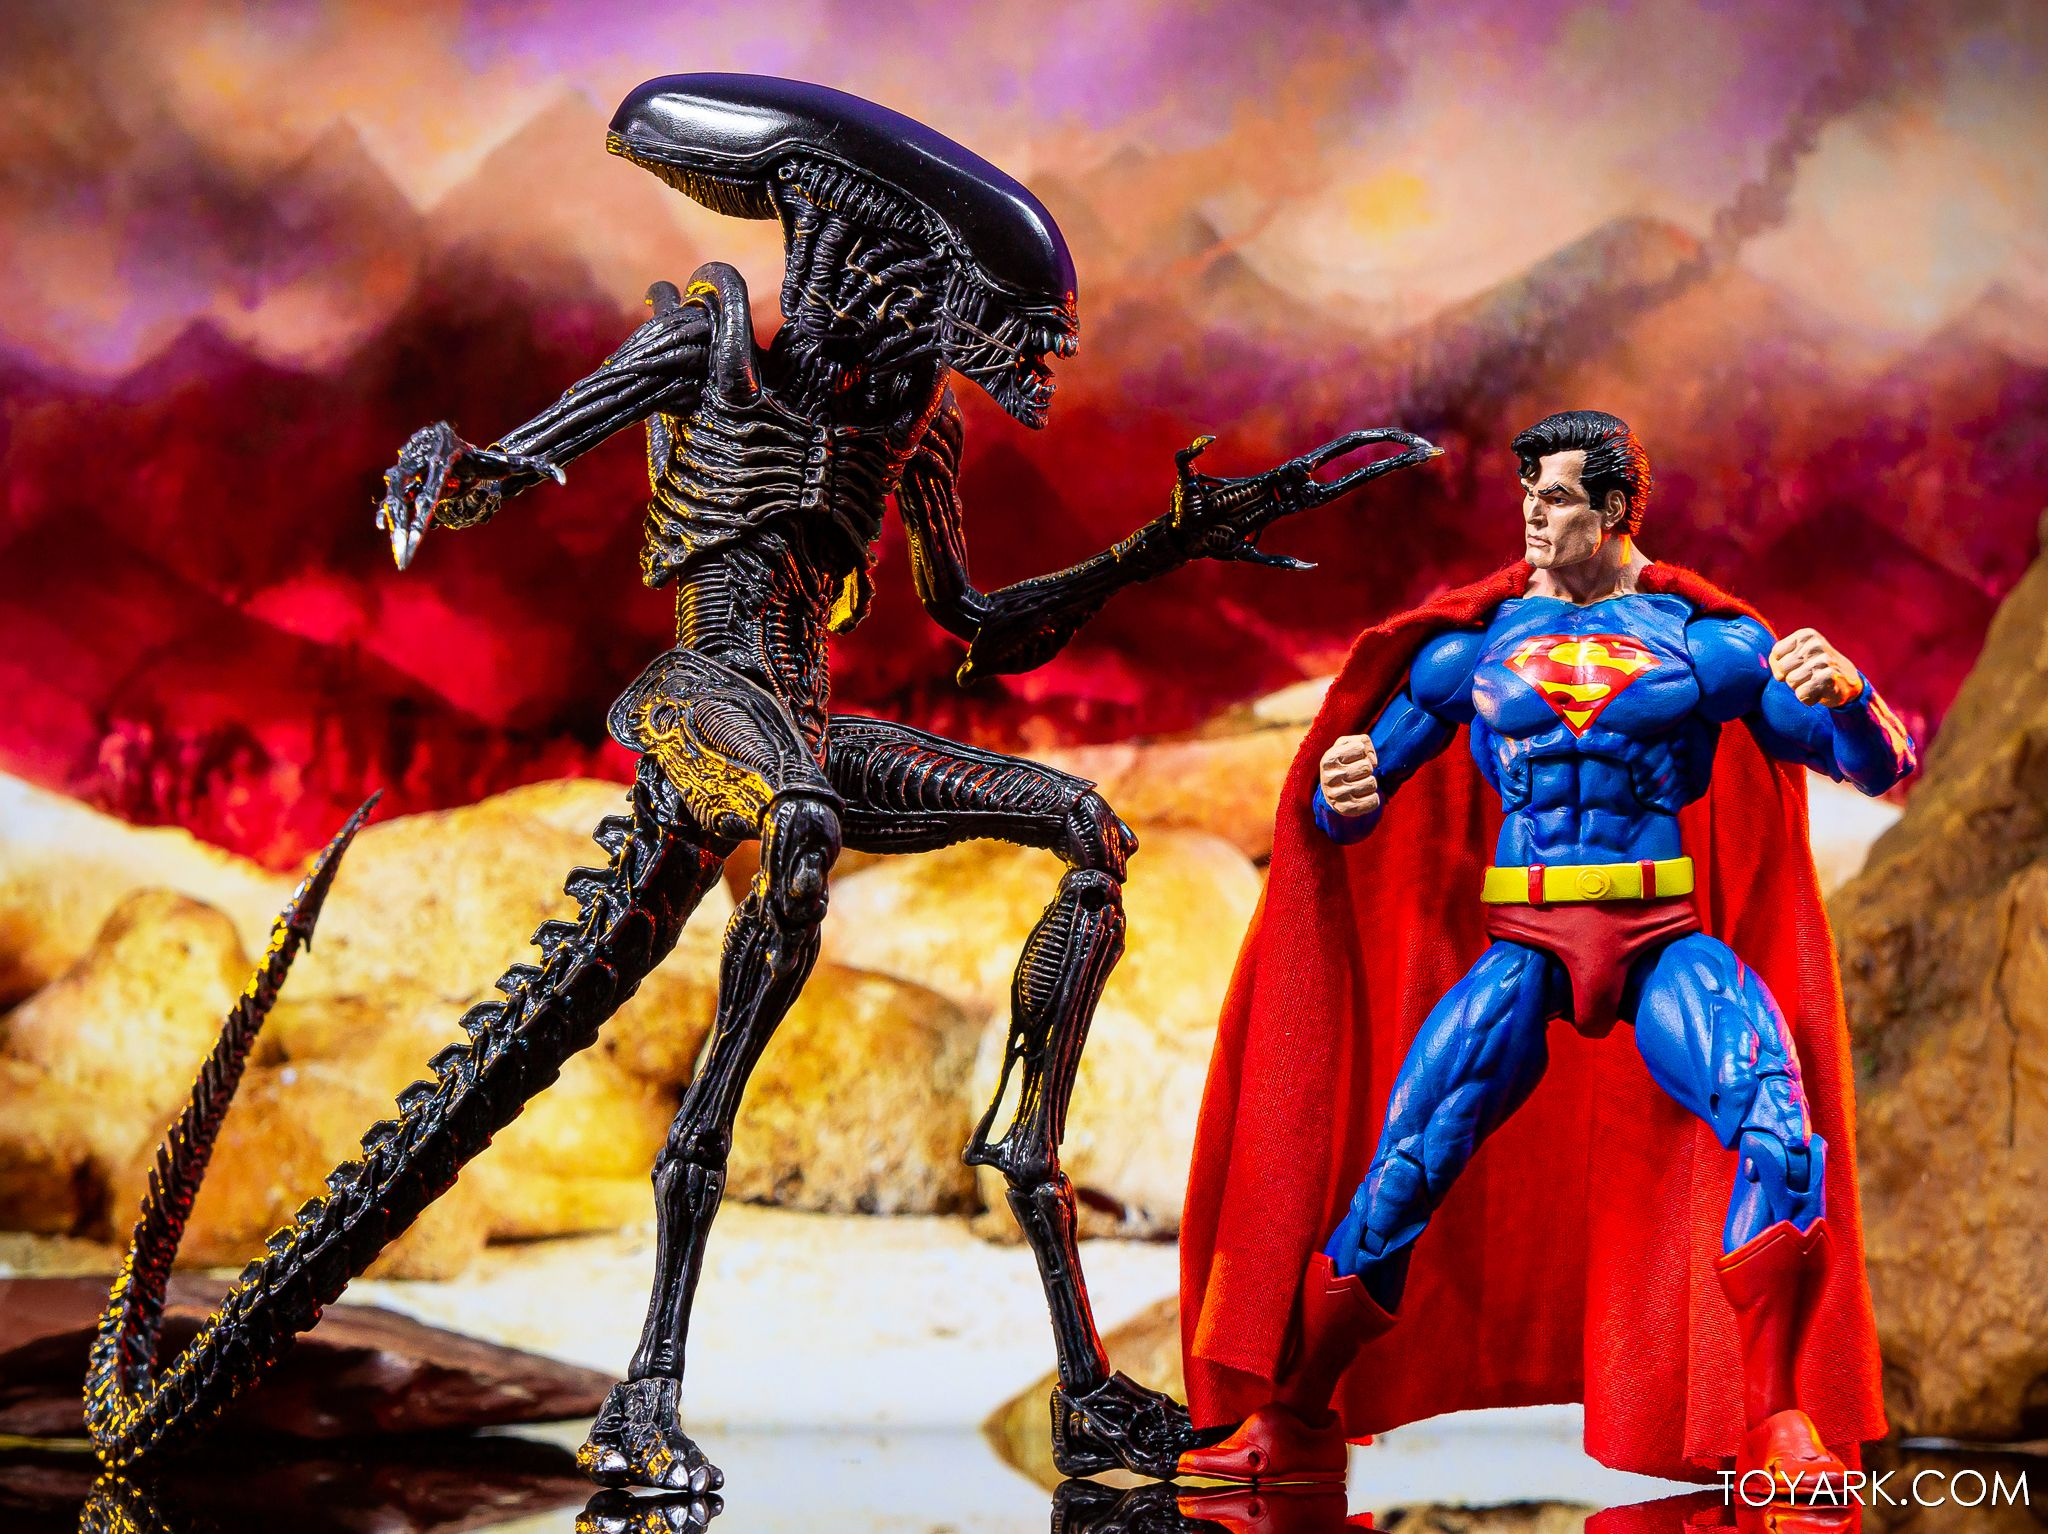 https://news.toyark.com/wp-content/uploads/sites/4/2019/09/Superman-vs-Alien-Set-047.jpg